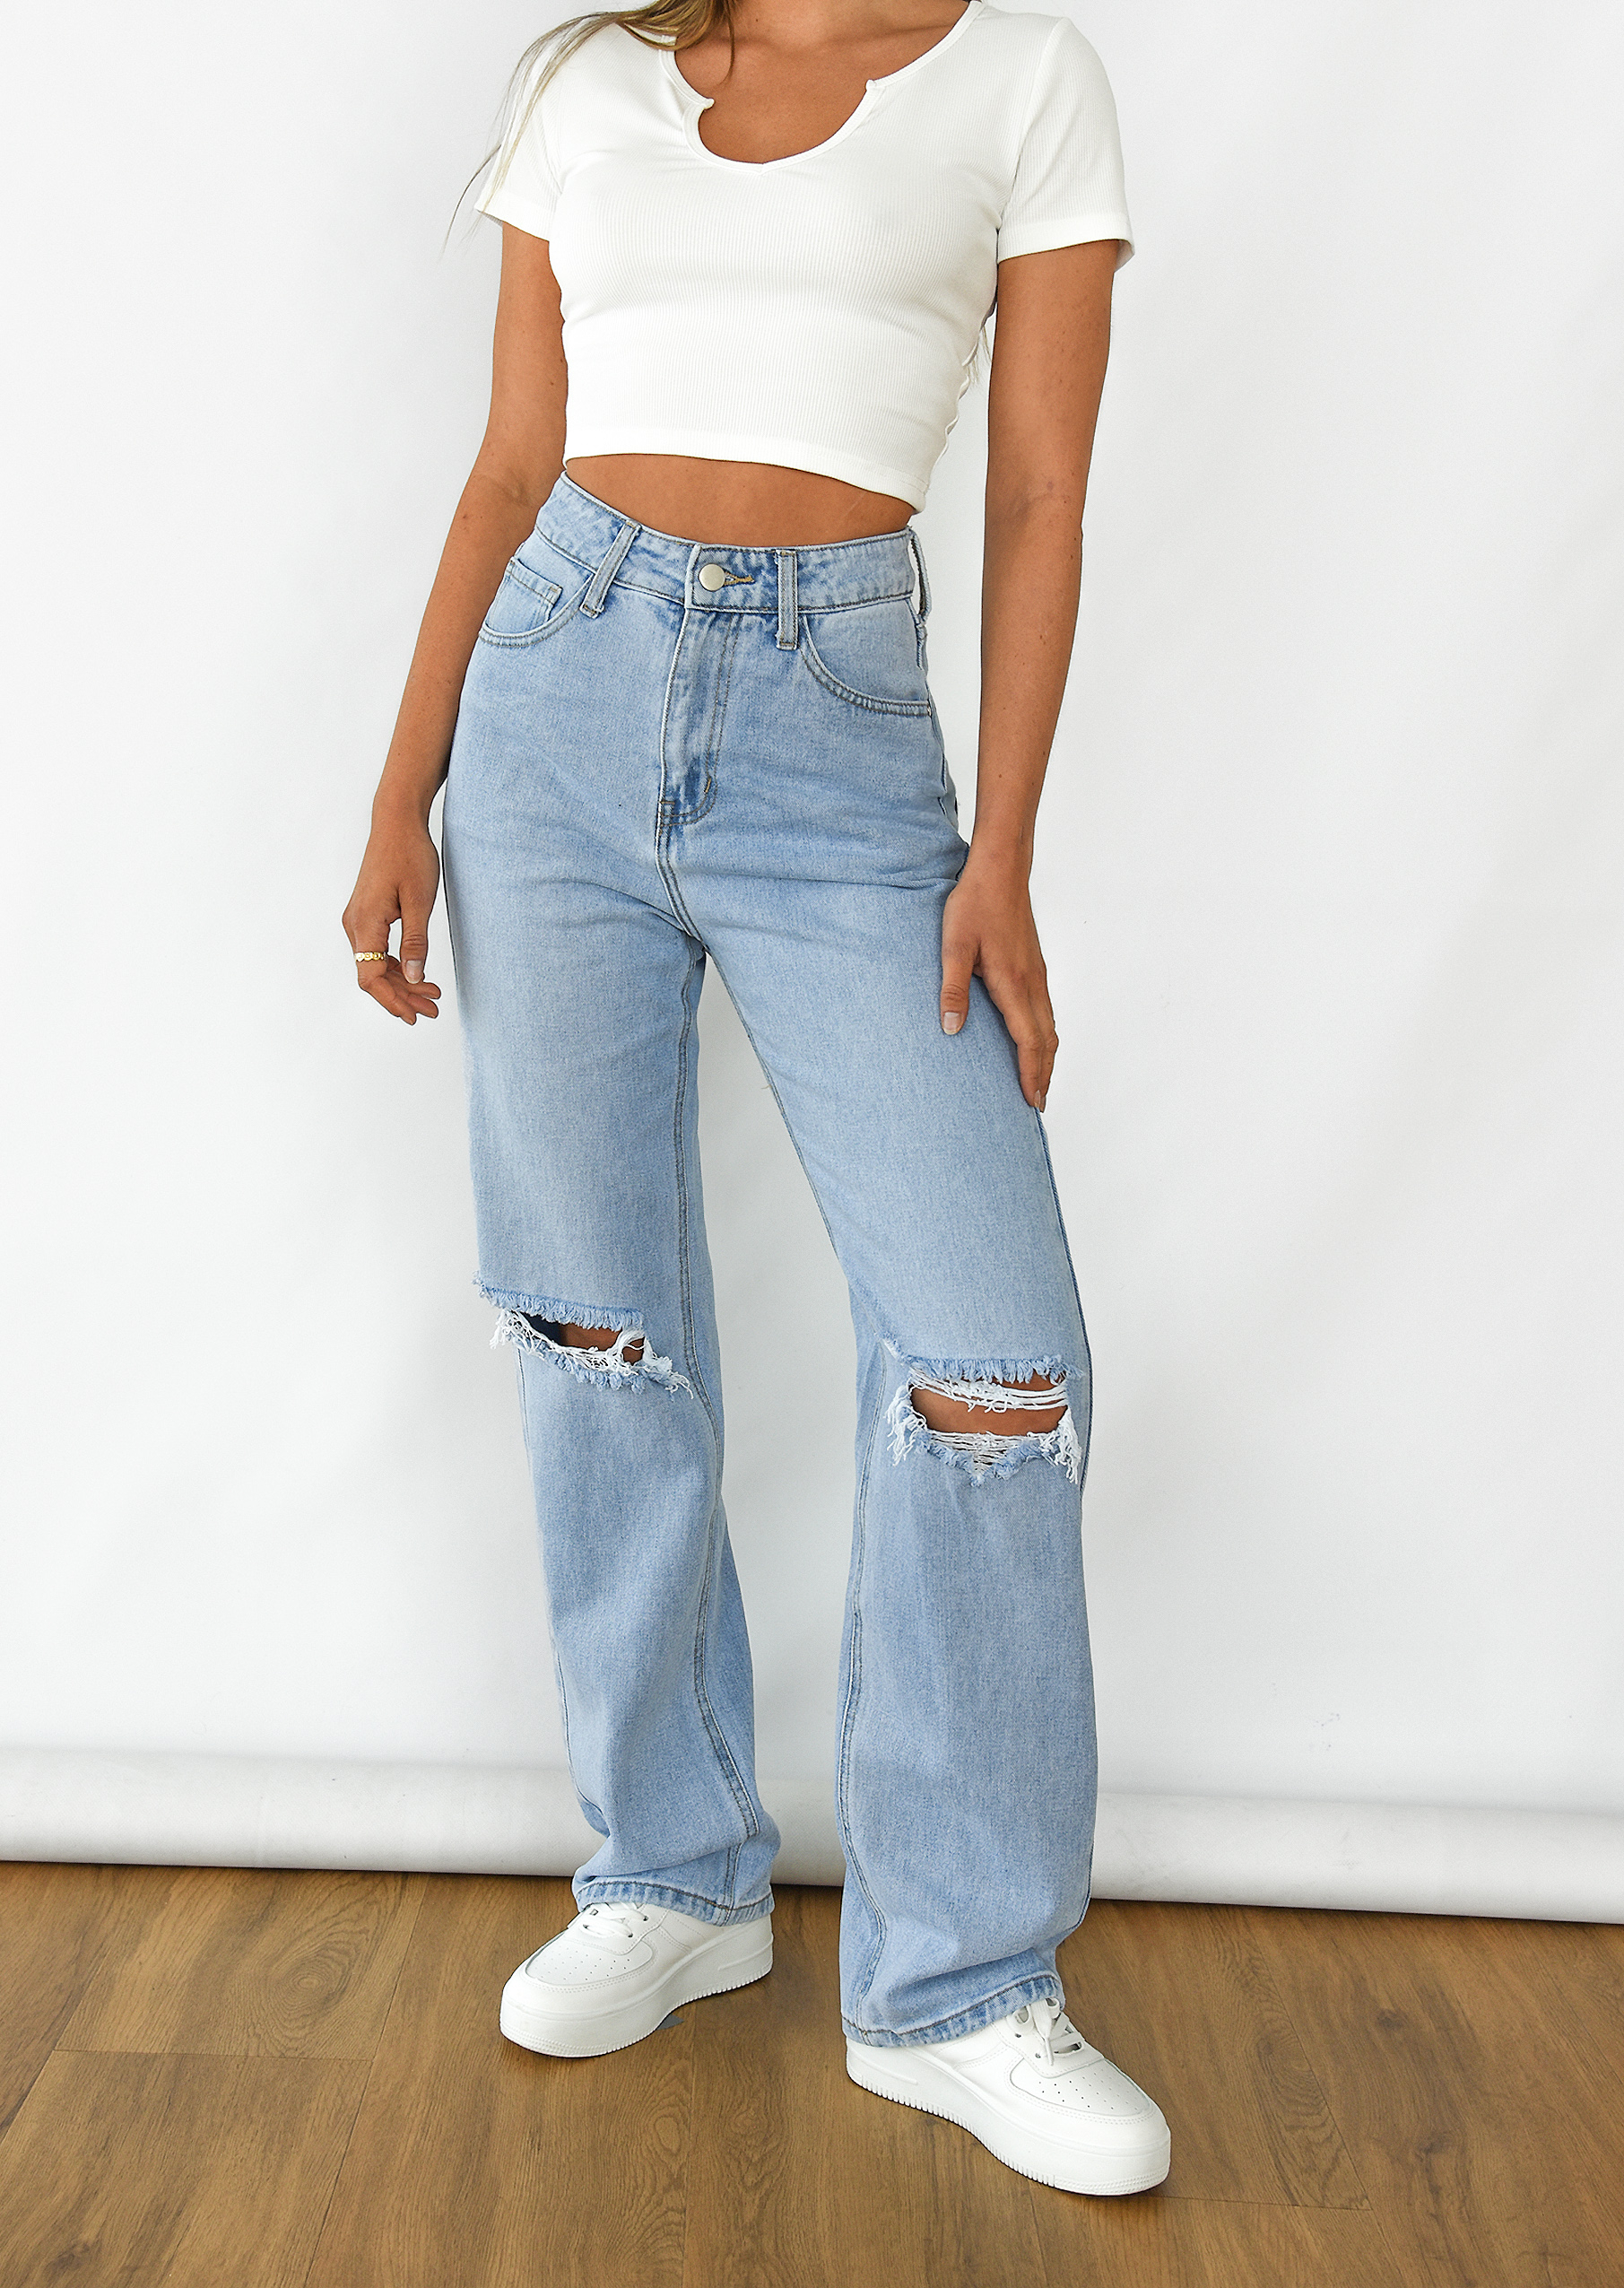 Check high waist trousers in beige